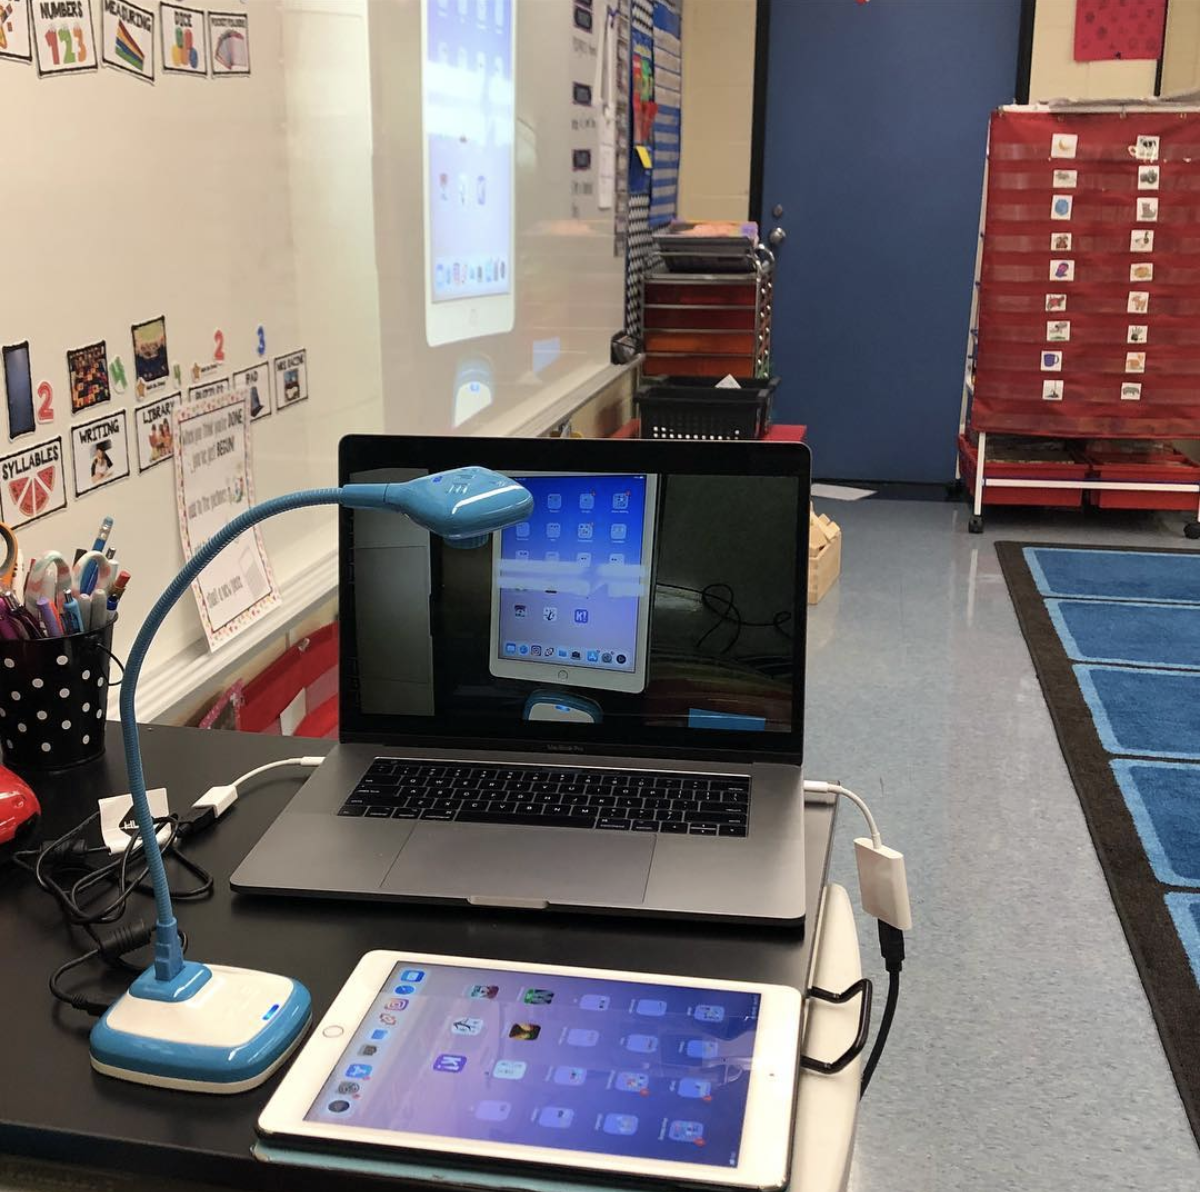 Affordable document camera for the classroom